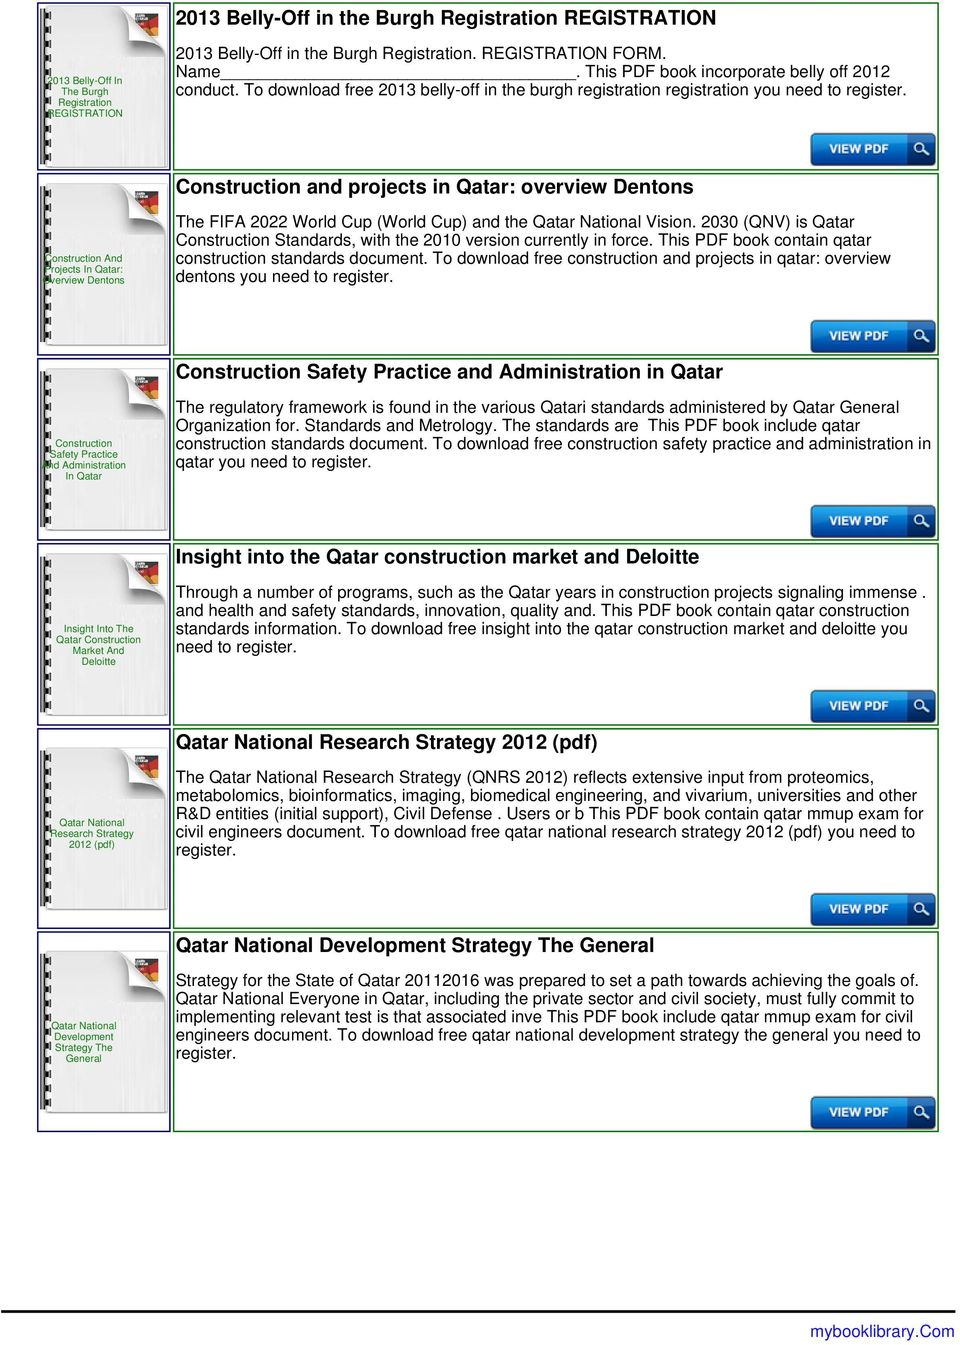 Mmup registration website in qatar pdf to download free 2013 belly off in the burgh registration registration you need to construction fandeluxe Images